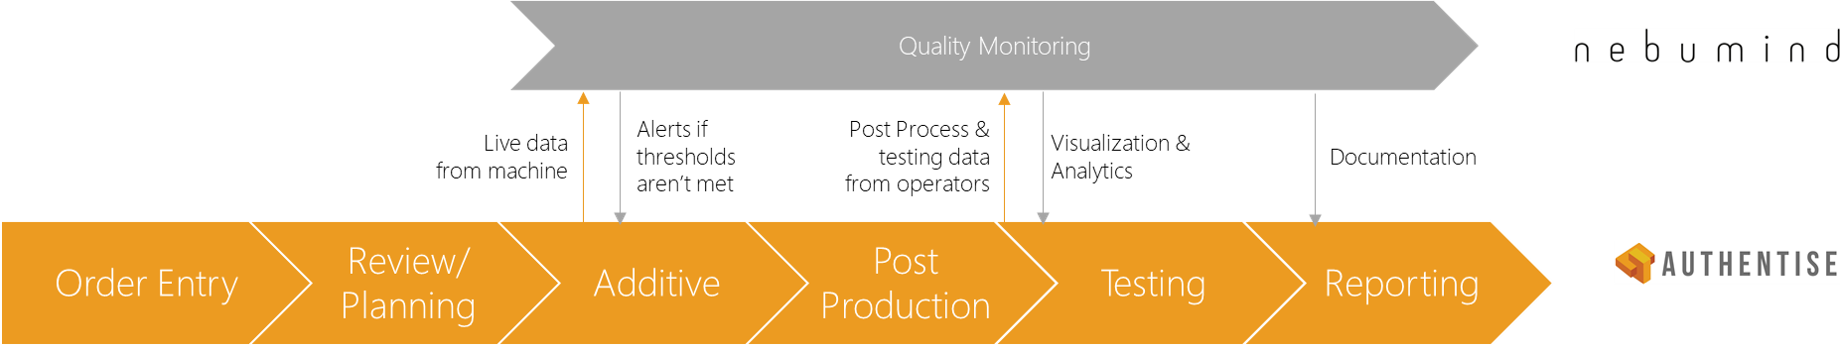 An overview of the quality monitoring process in AMES. Image via Authentise.